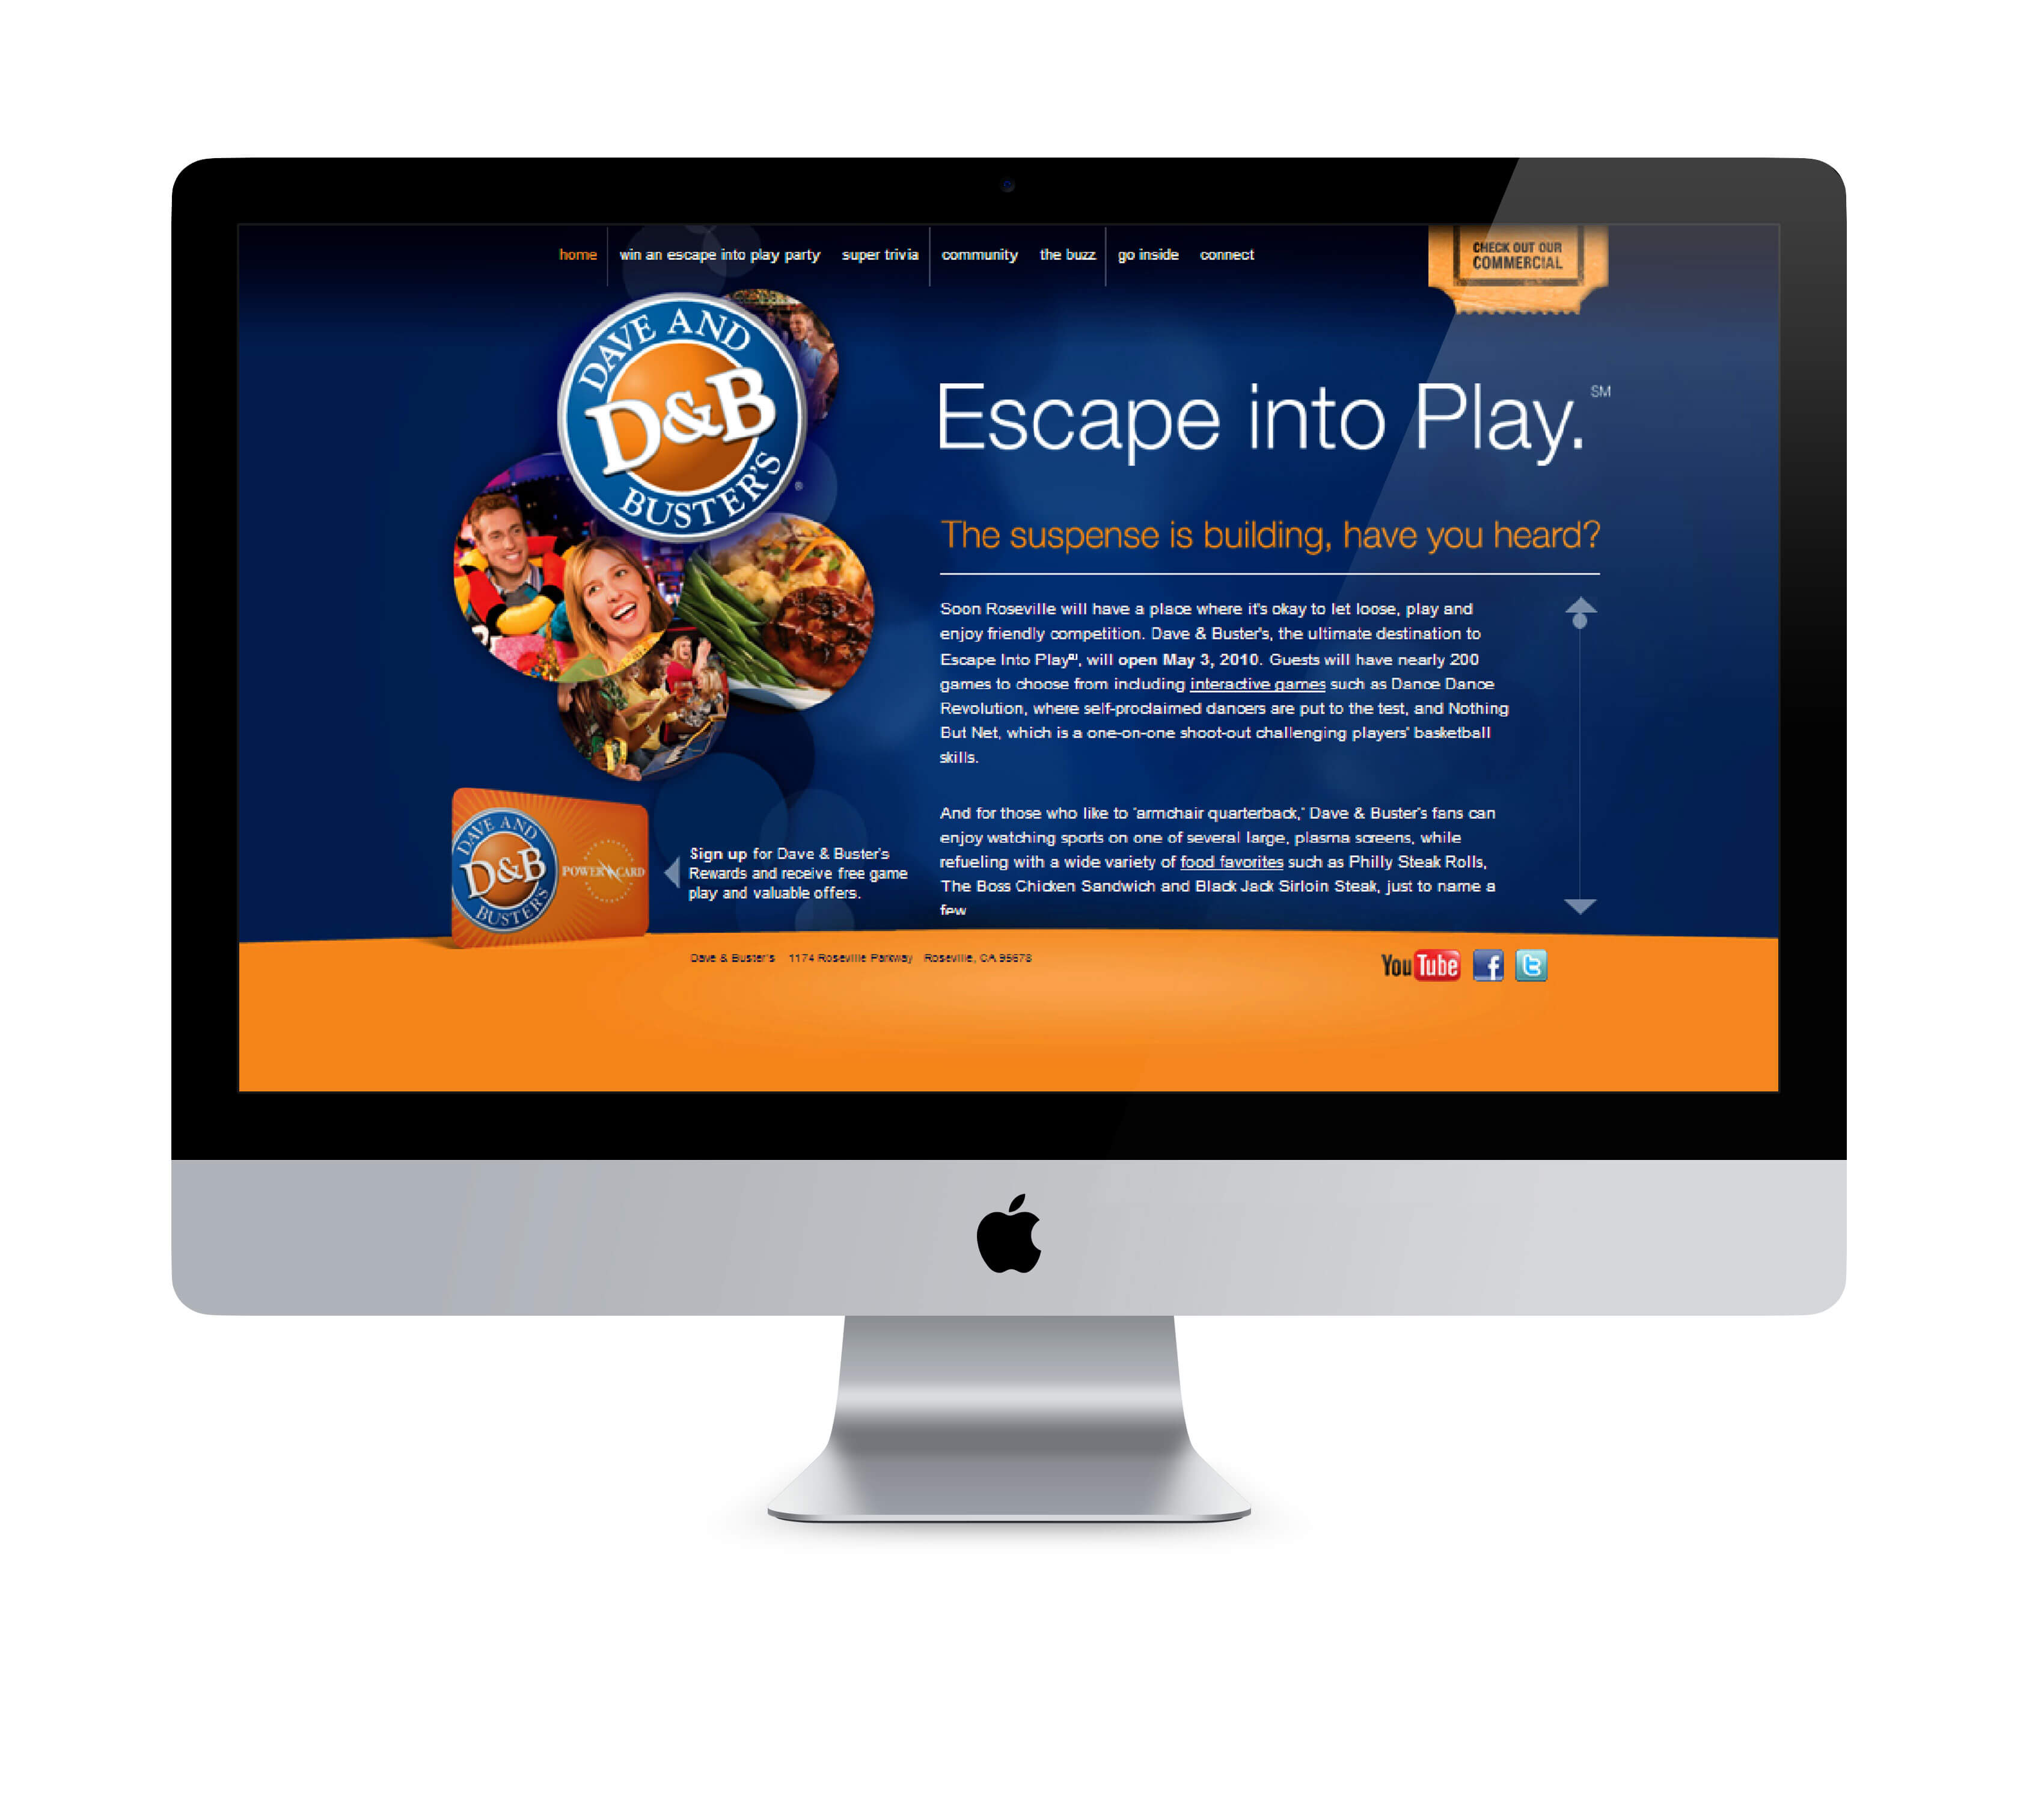 Dave and Buster's Microsite